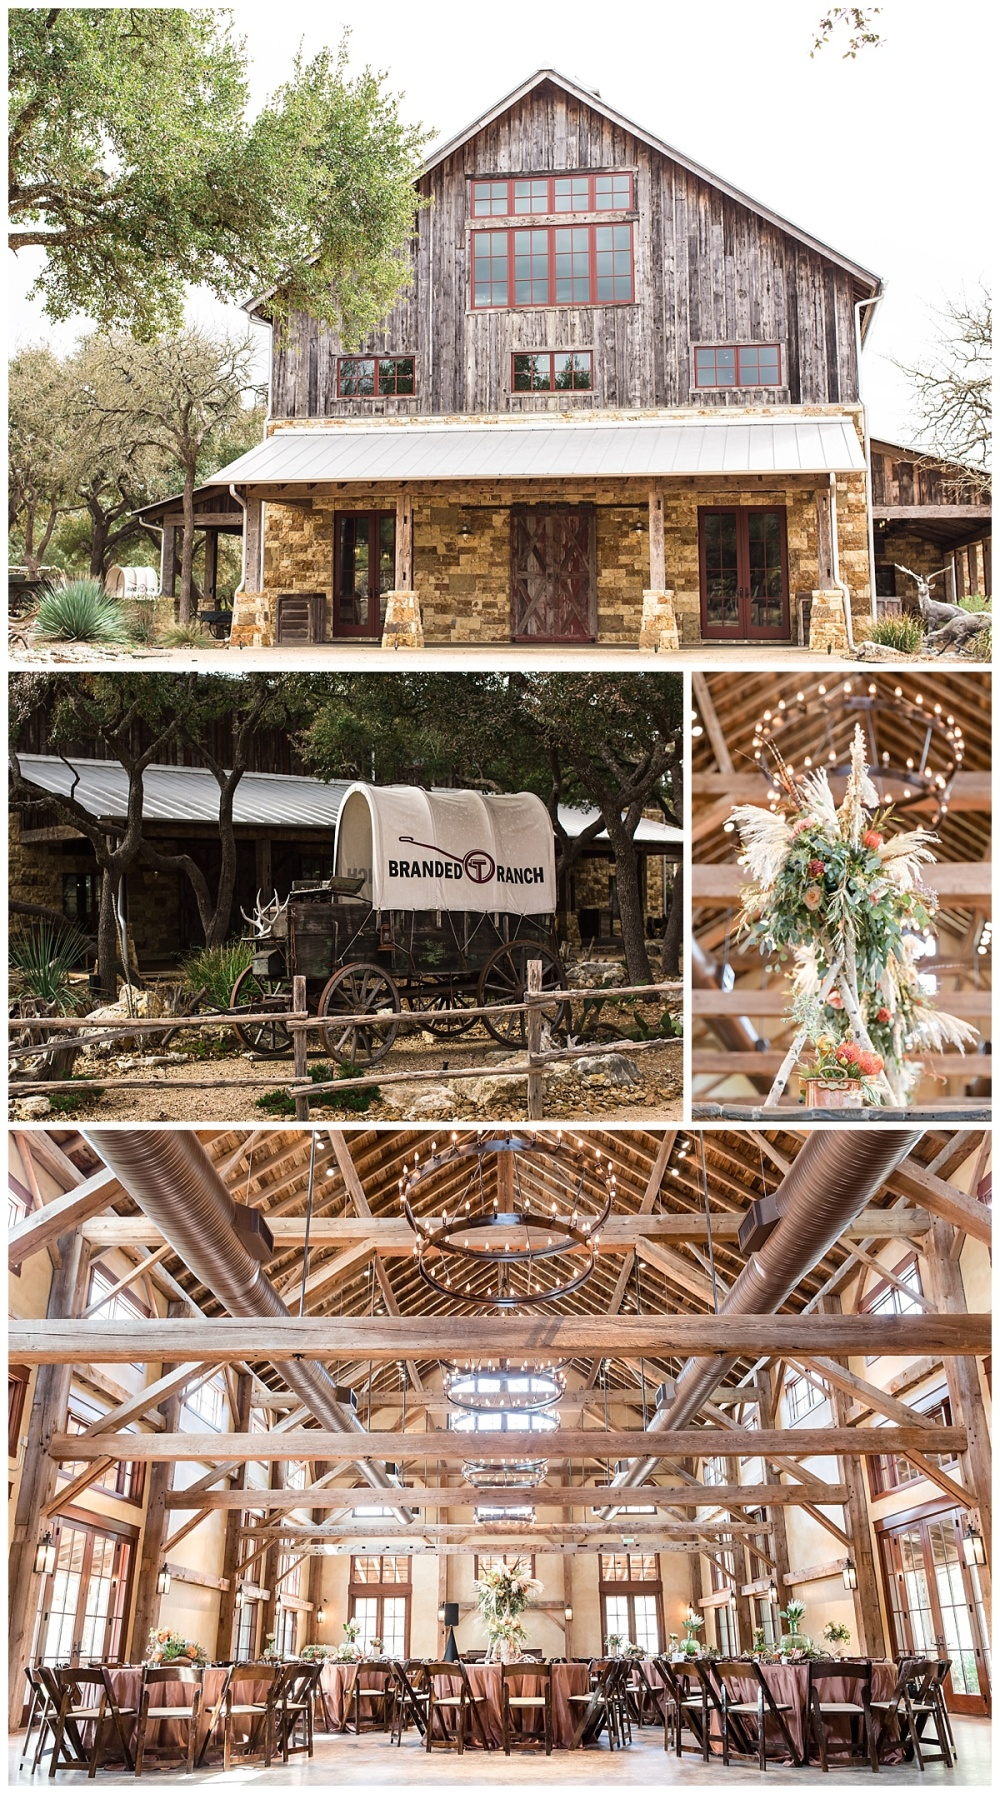 Texas-Wedding-Photographer-Braded-T-Ranch-Kendalia-Bride-Groom-Southwestern-Style-Carly-Barton-Photography-Vogt_0001.jpg